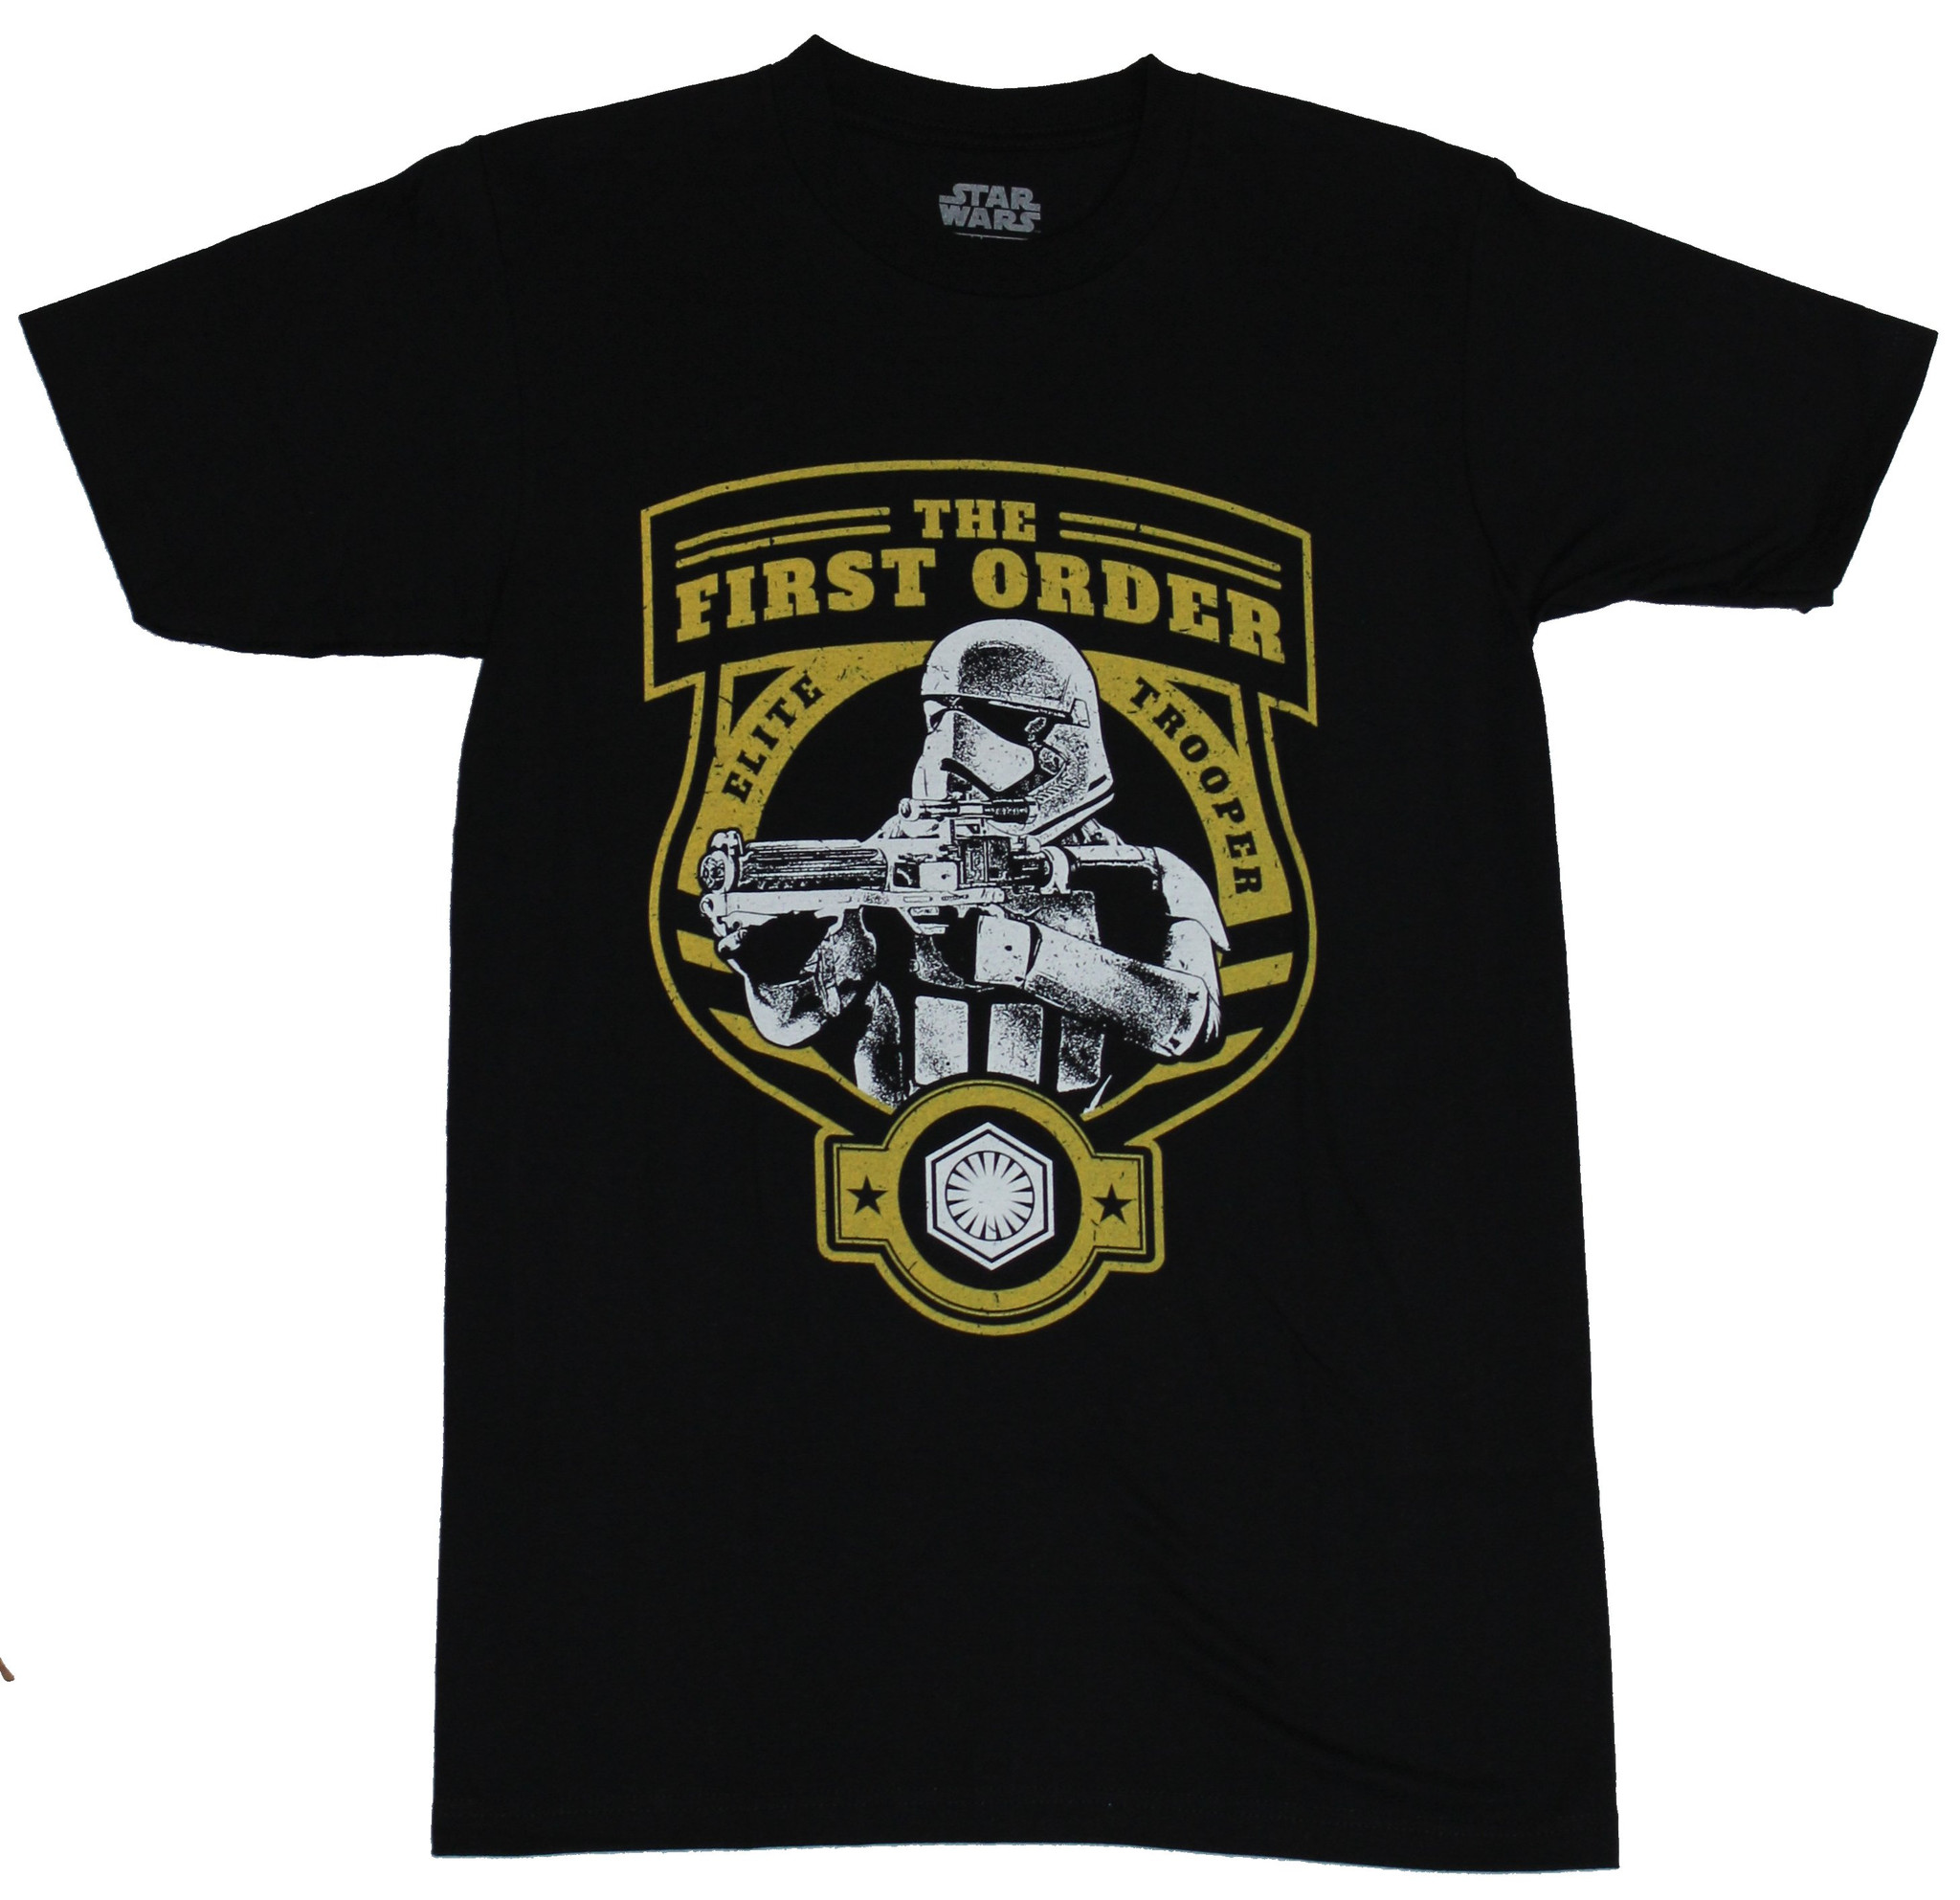 Star Wars Force Awakens Mens T-Shirt - The First Order Elite Trooper Image